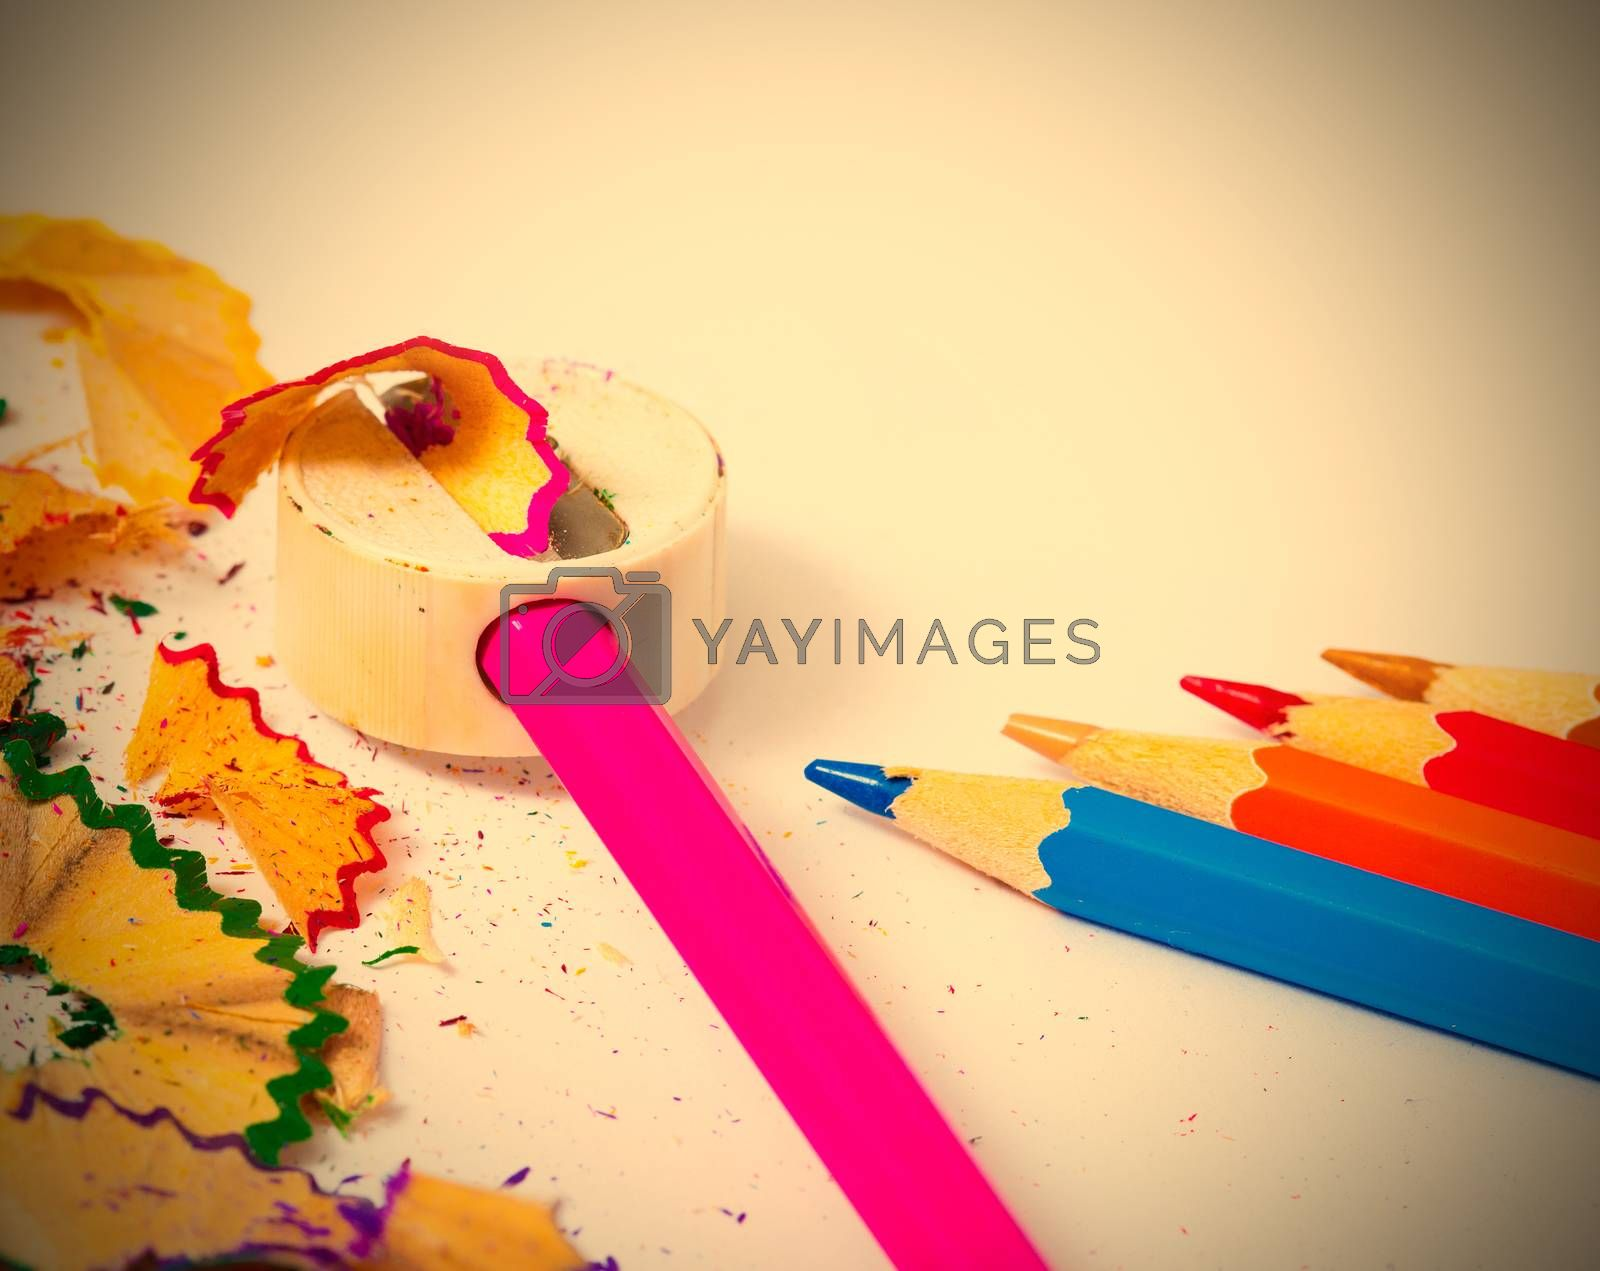 Royalty free image of set of colored pencils, sharpener and shavings  by Astroid